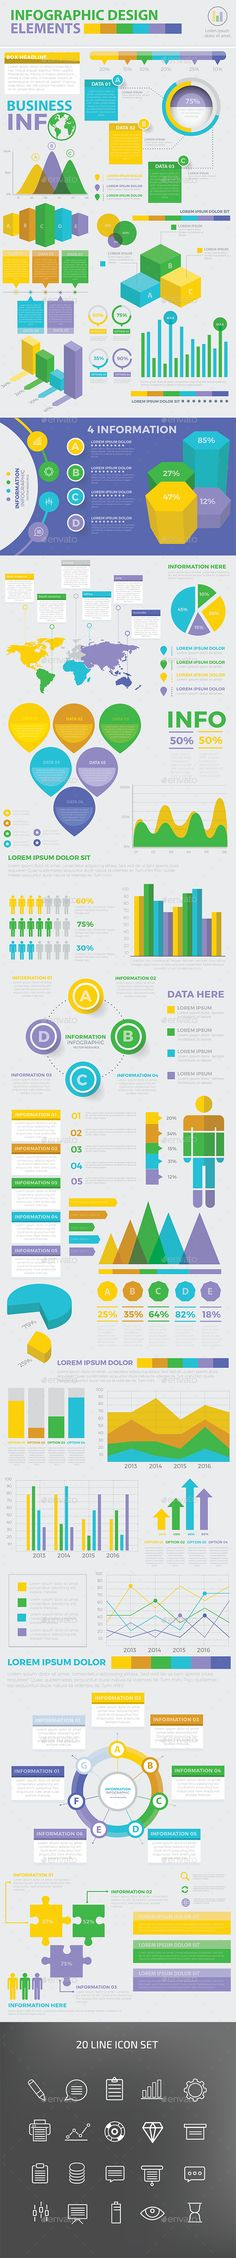 Modern Infographic elements design template - Infographics Template Vector EPS, AI Illustrator. Download here: https://graphicriver.net/item/modern-infographic-elements-design/16889486?s_rank=42&ref=yinkira